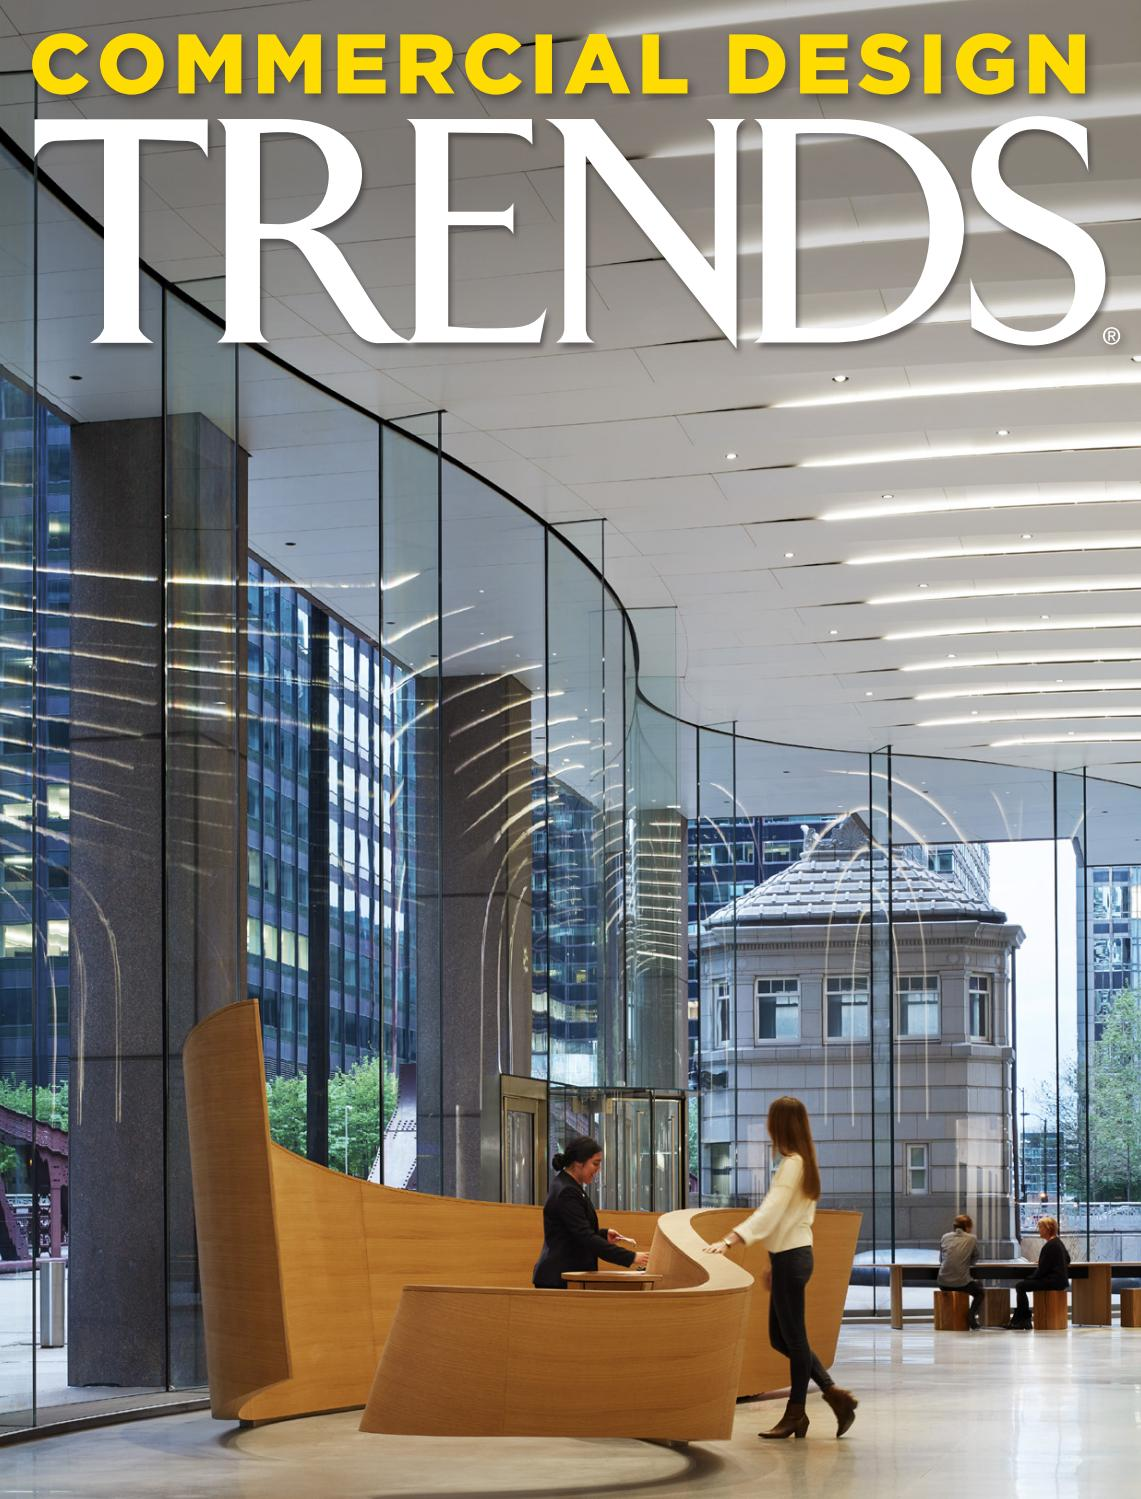 NZ Commercial Design Trends Vol. 35/02C by trendsideas.com - issuu